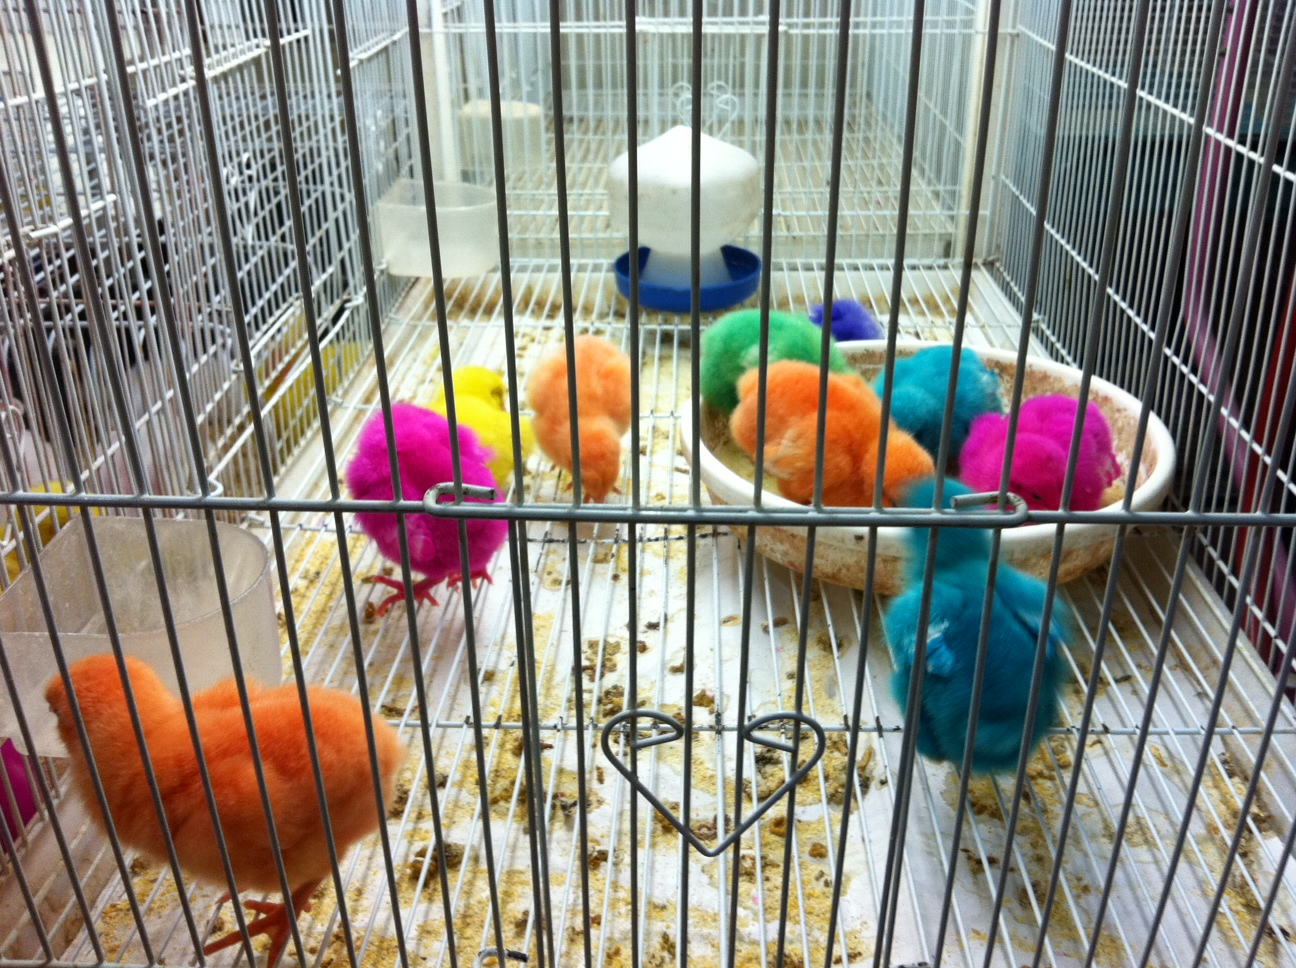 Do Fluorescent Chicks and Bunnies in Qatar Alienate Kids From Nature?